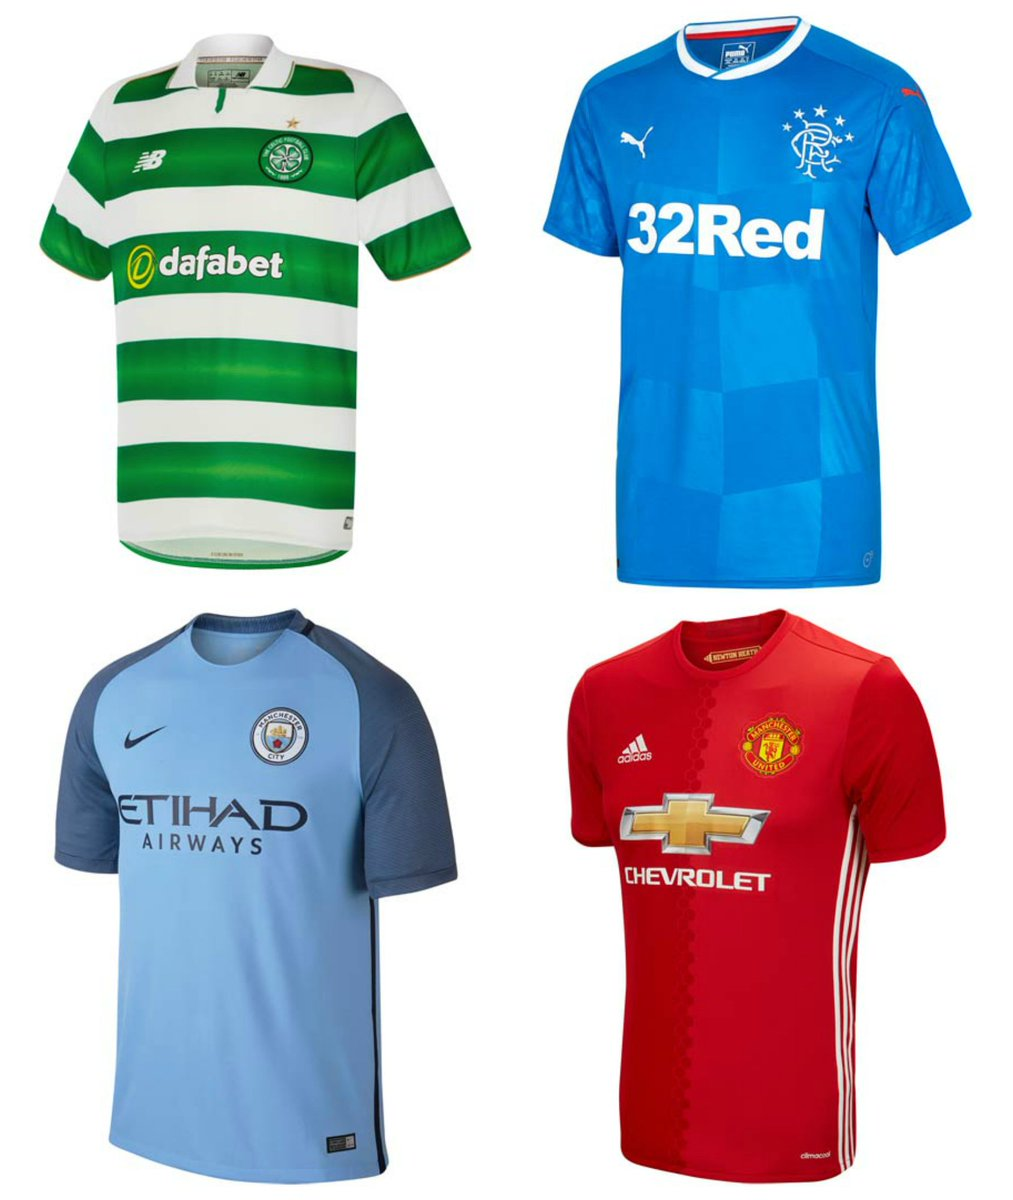 Its derby day! Make sure to get kitted out in your team's colours online and in store; https://t.co/uUkUktM3CX https://t.co/wgd9yvxiN9